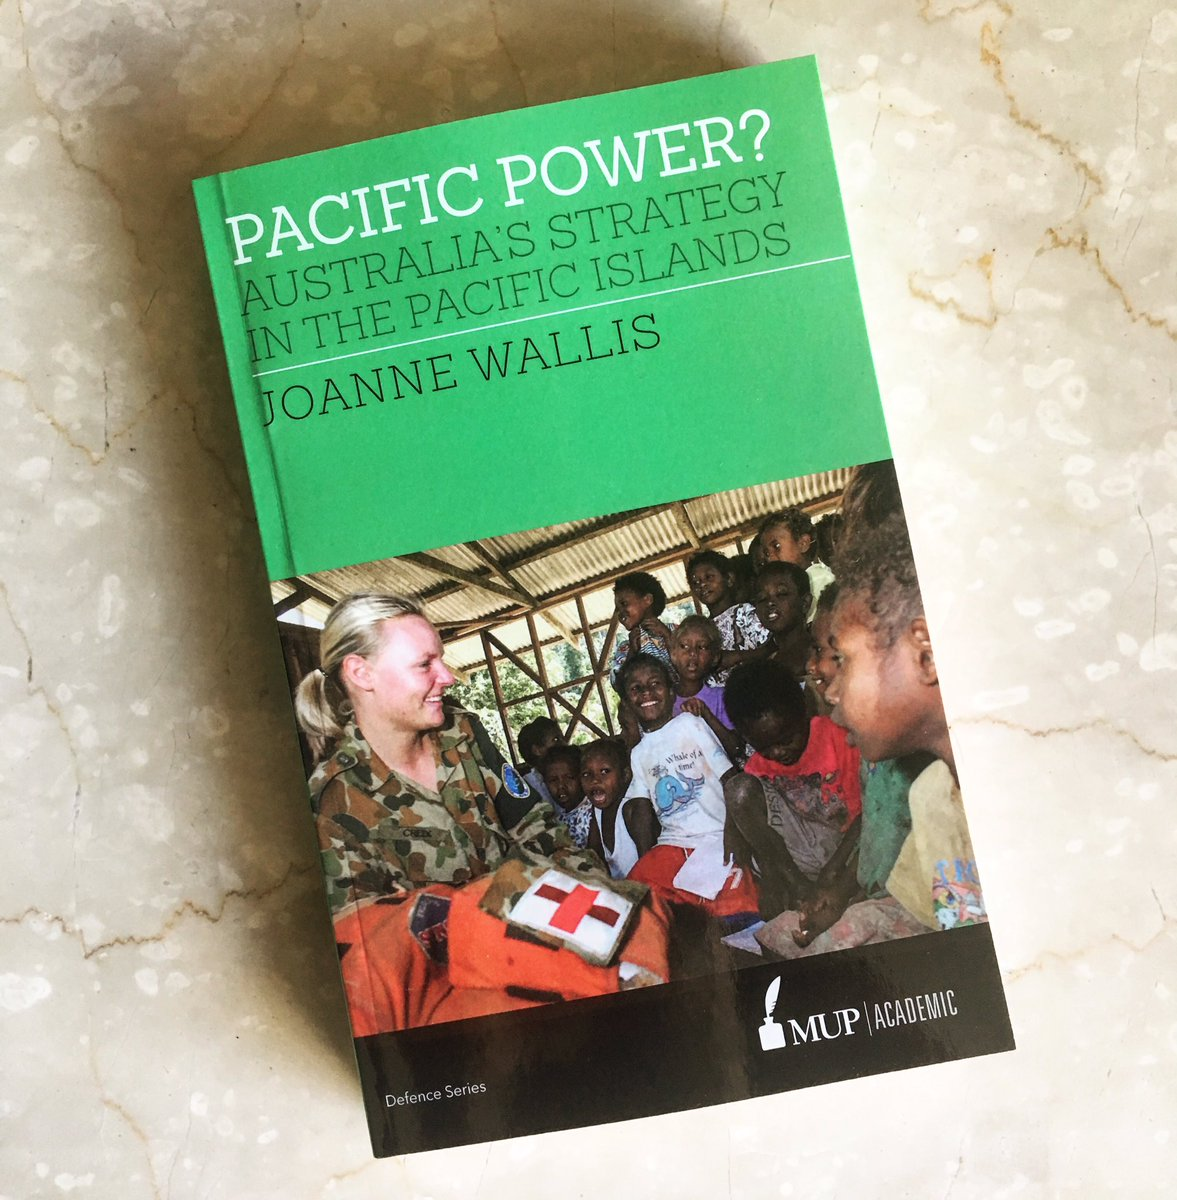 #PacificPower by Dr Joanne Wallis of the @ANU_SDSC is the latest addition to our #Academic series.  https://www. mup.com.au/books/97805228 68227-pacific-power?utm_source=social&amp;utm_campaign=pacificpower &nbsp; … <br>http://pic.twitter.com/IvZWnZWn6w